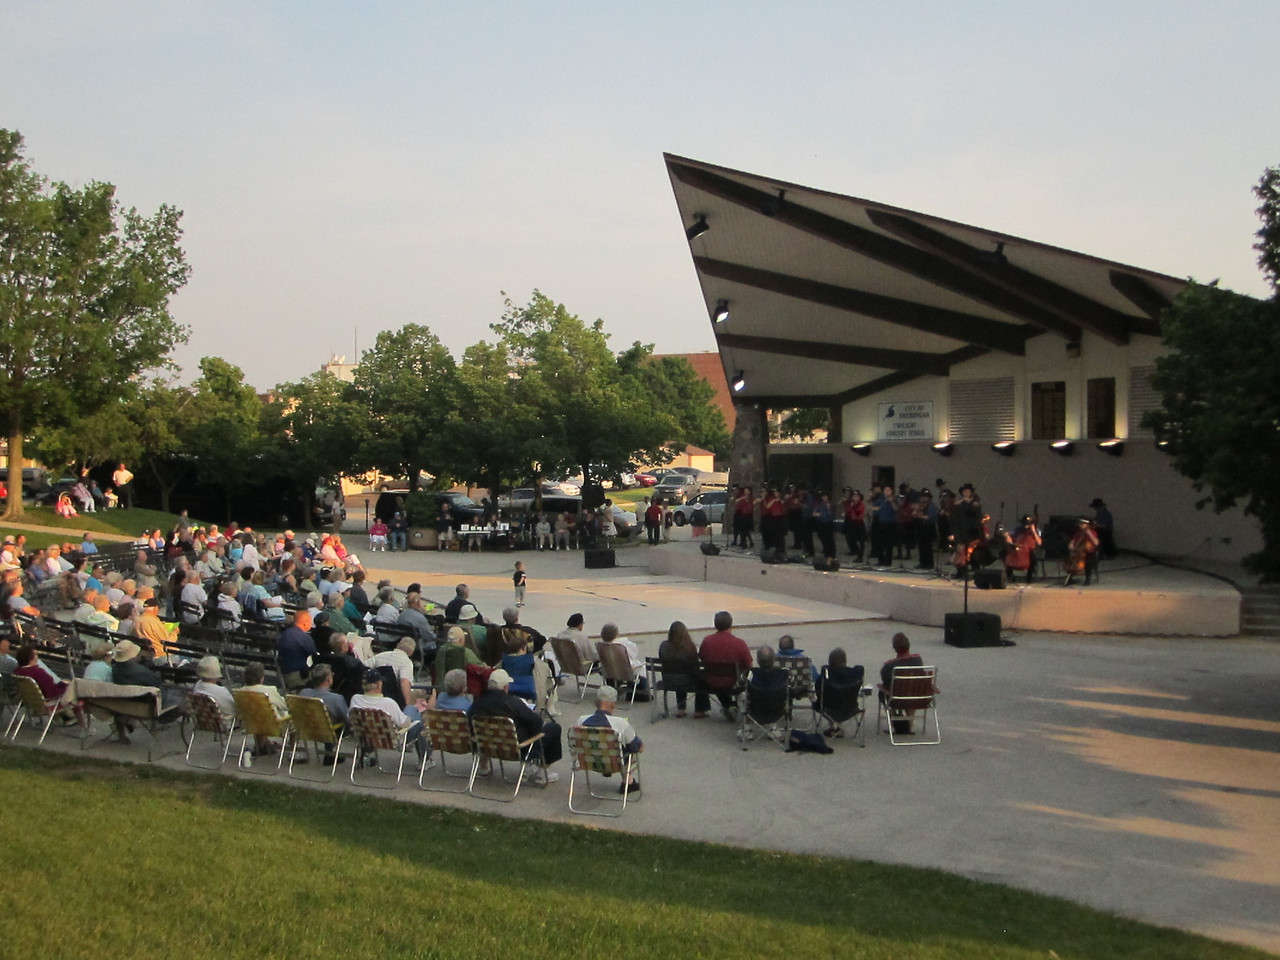 """Welcome to Sheboygan, Wisconsin Fountain Park Band shell Twilight Concert Series!  Another nice day and great performance venue for the Saline Fiddlers.  Friday Jul 1, 2011. <br /> Once again the crowd kept growing as people had to get closer to see America's premier youth fiddling showband. It was a beautiful evening and another great gig on the Land O Lakes Tour! The guestbook entries keep rolling in on Saline Fiddlers website. <a href=""""http://www.salinefiddlers.com/sfp/guestbook/"""">http://www.salinefiddlers.com/sfp/guestbook/</a><br />  Also visit Sheboygan at <a href=""""http://www.visitsheboygan.com/"""">http://www.visitsheboygan.com/</a> Photos credit Kevin Carnahan, Bob Remenapp and Ben Culver"""